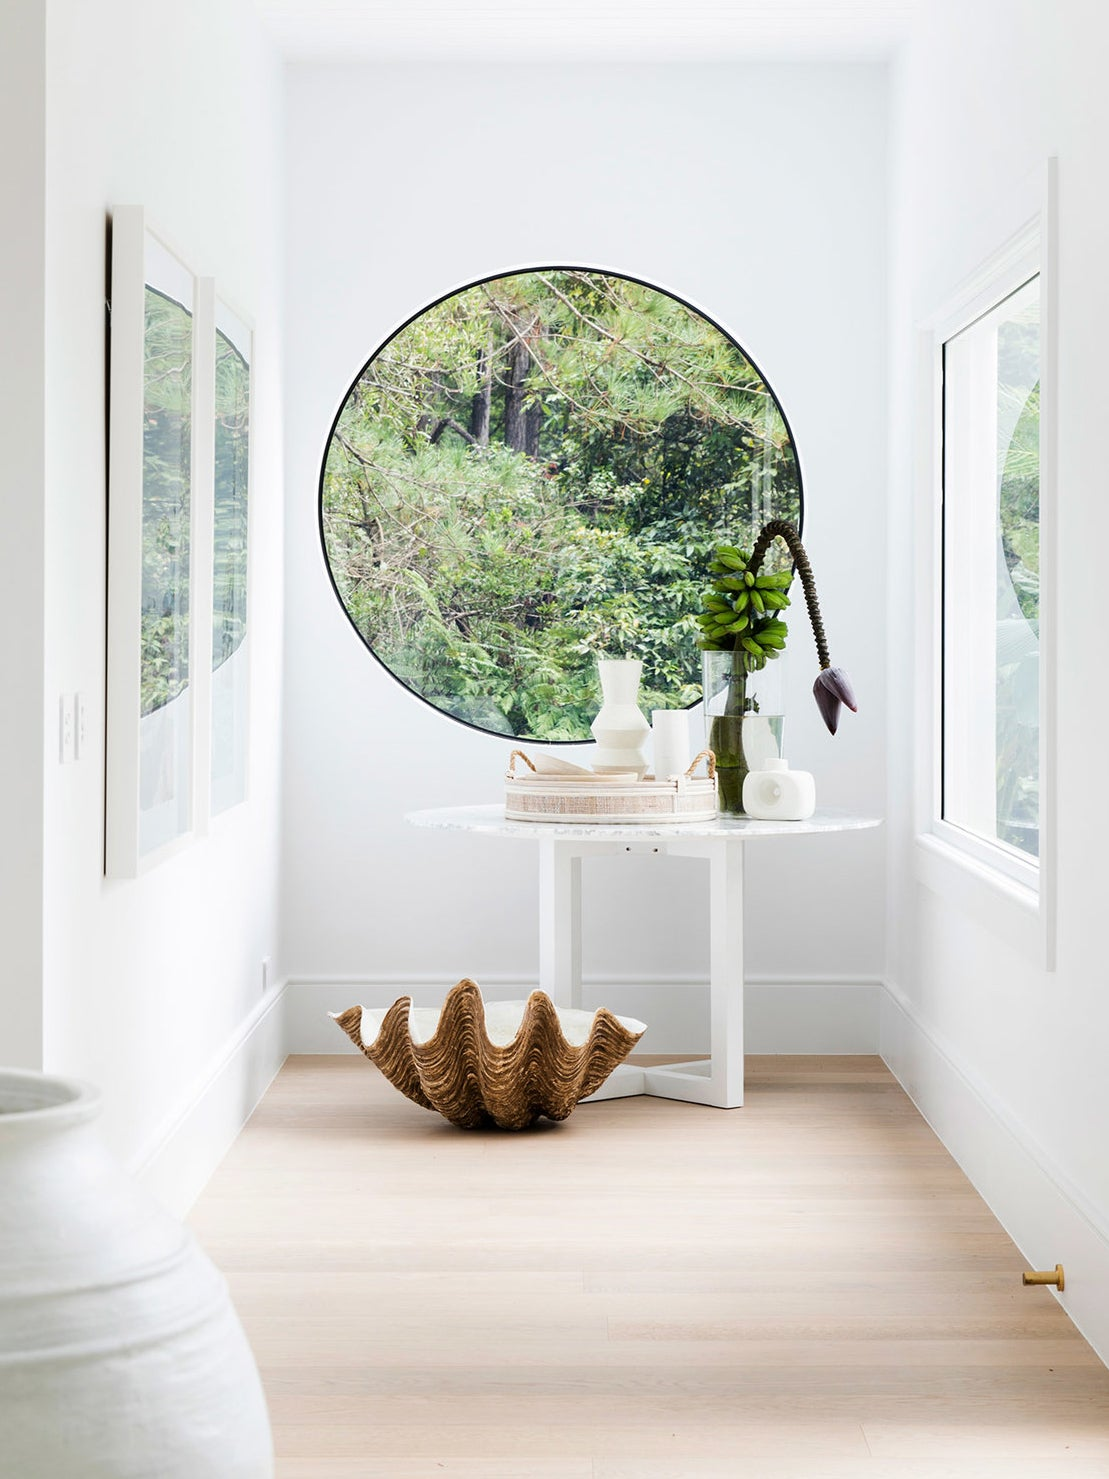 large round window at the end of the entryway